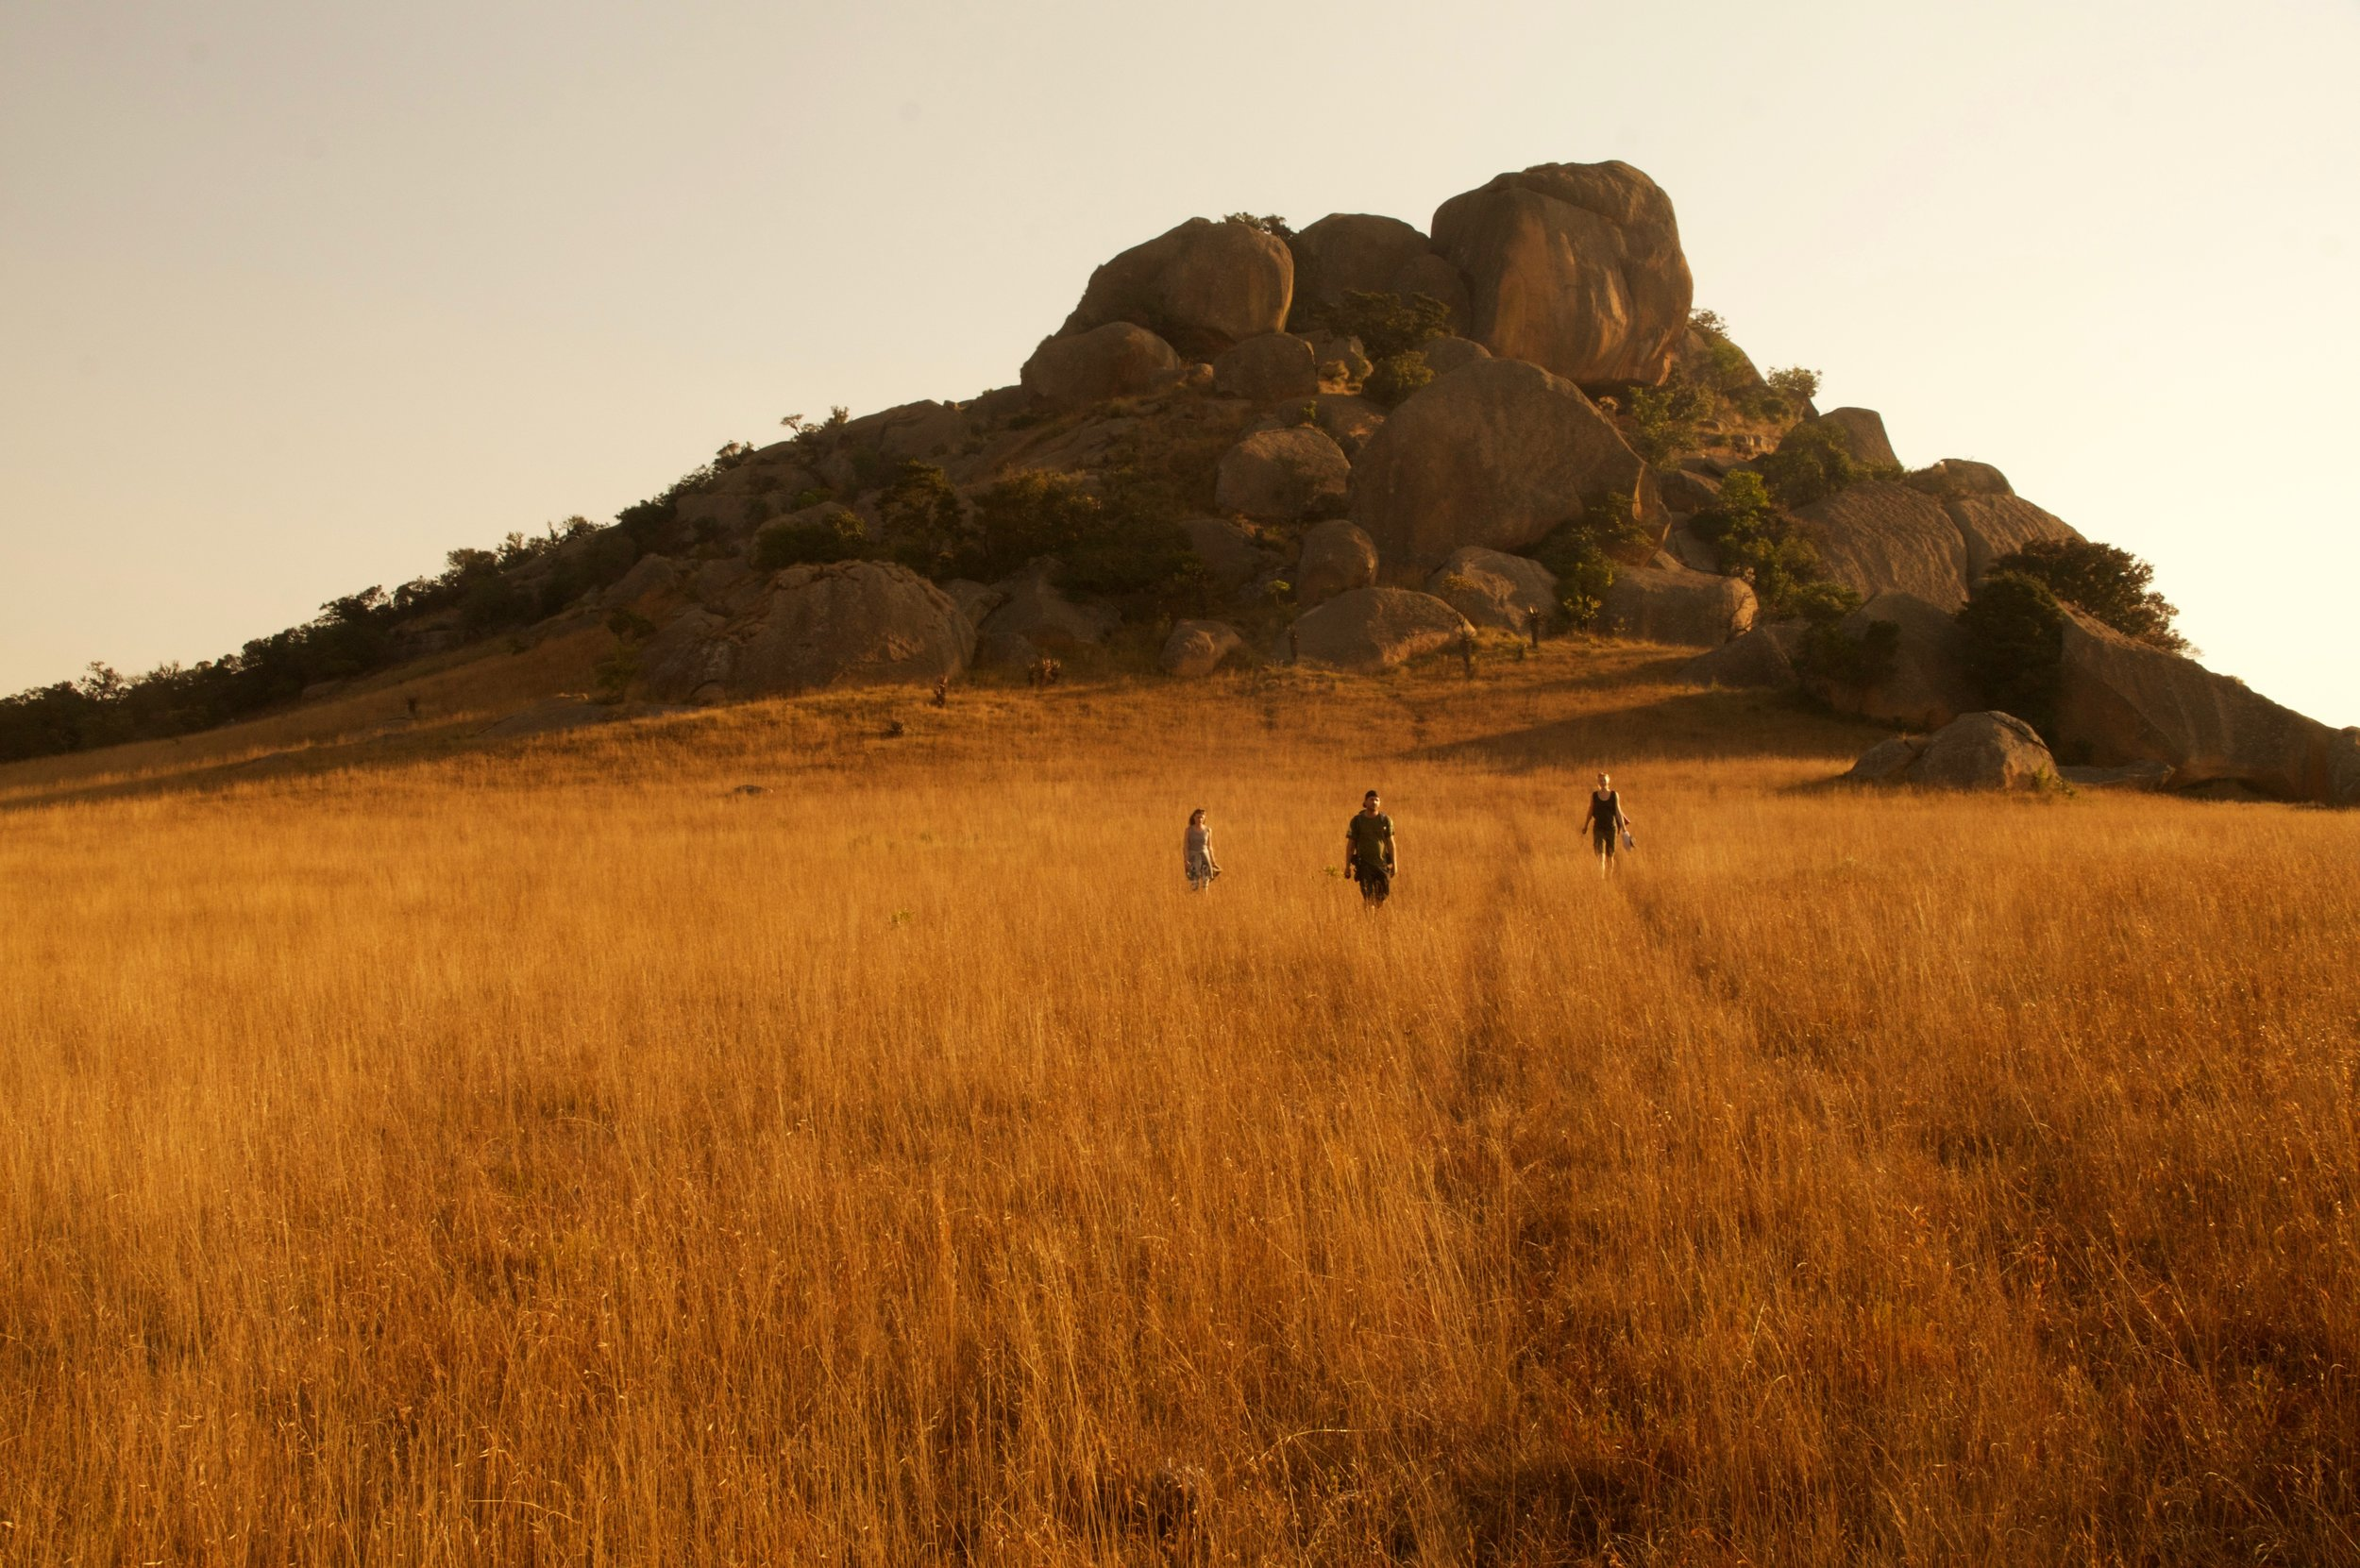 * Swaziland's golden midday vibes